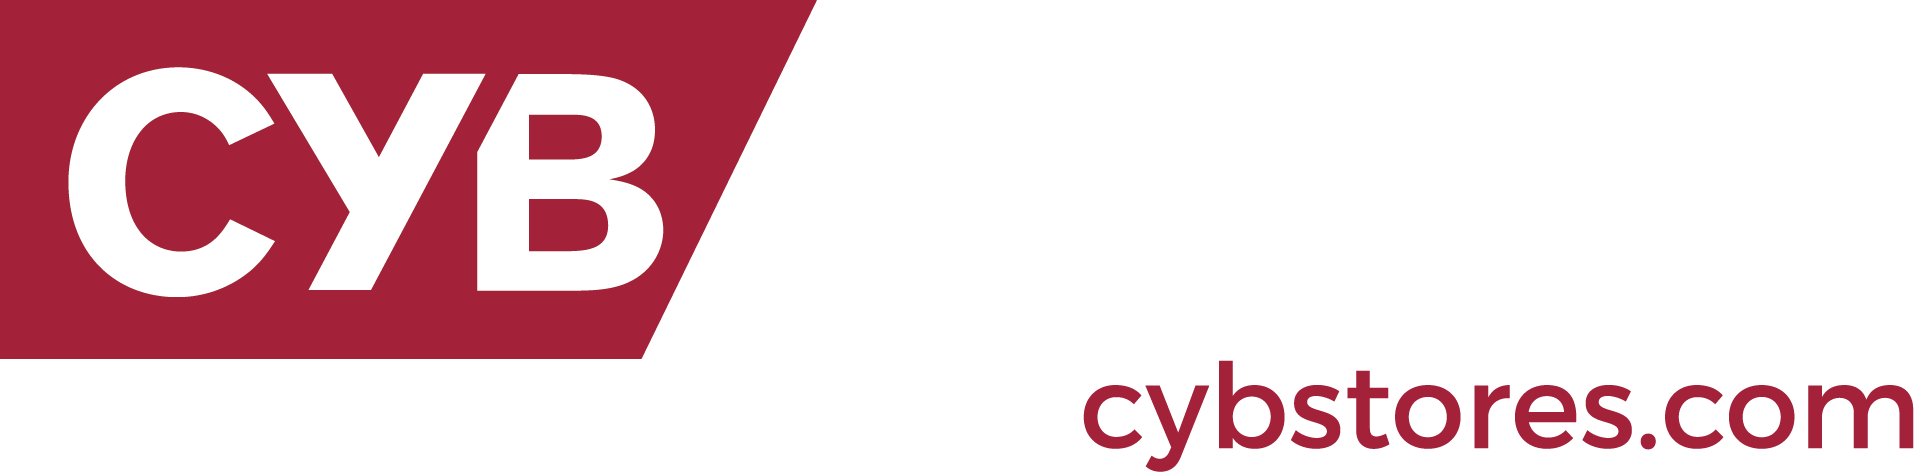 cybstores